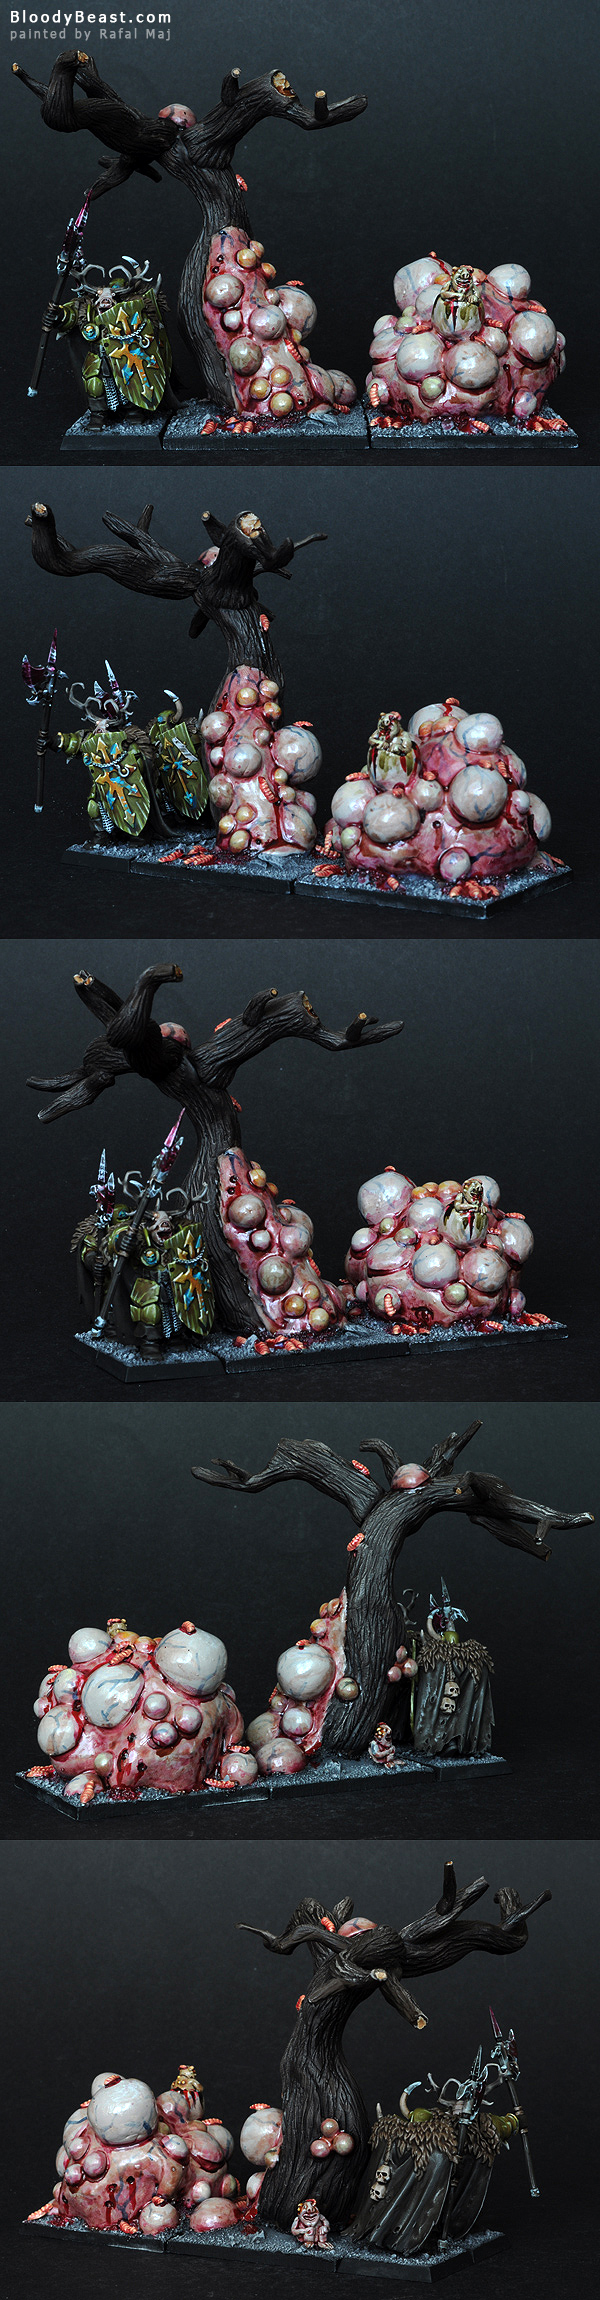 Nurgle Warriors Fillers sculpted and painted by Rafal Maj (BloodyBeast.com)